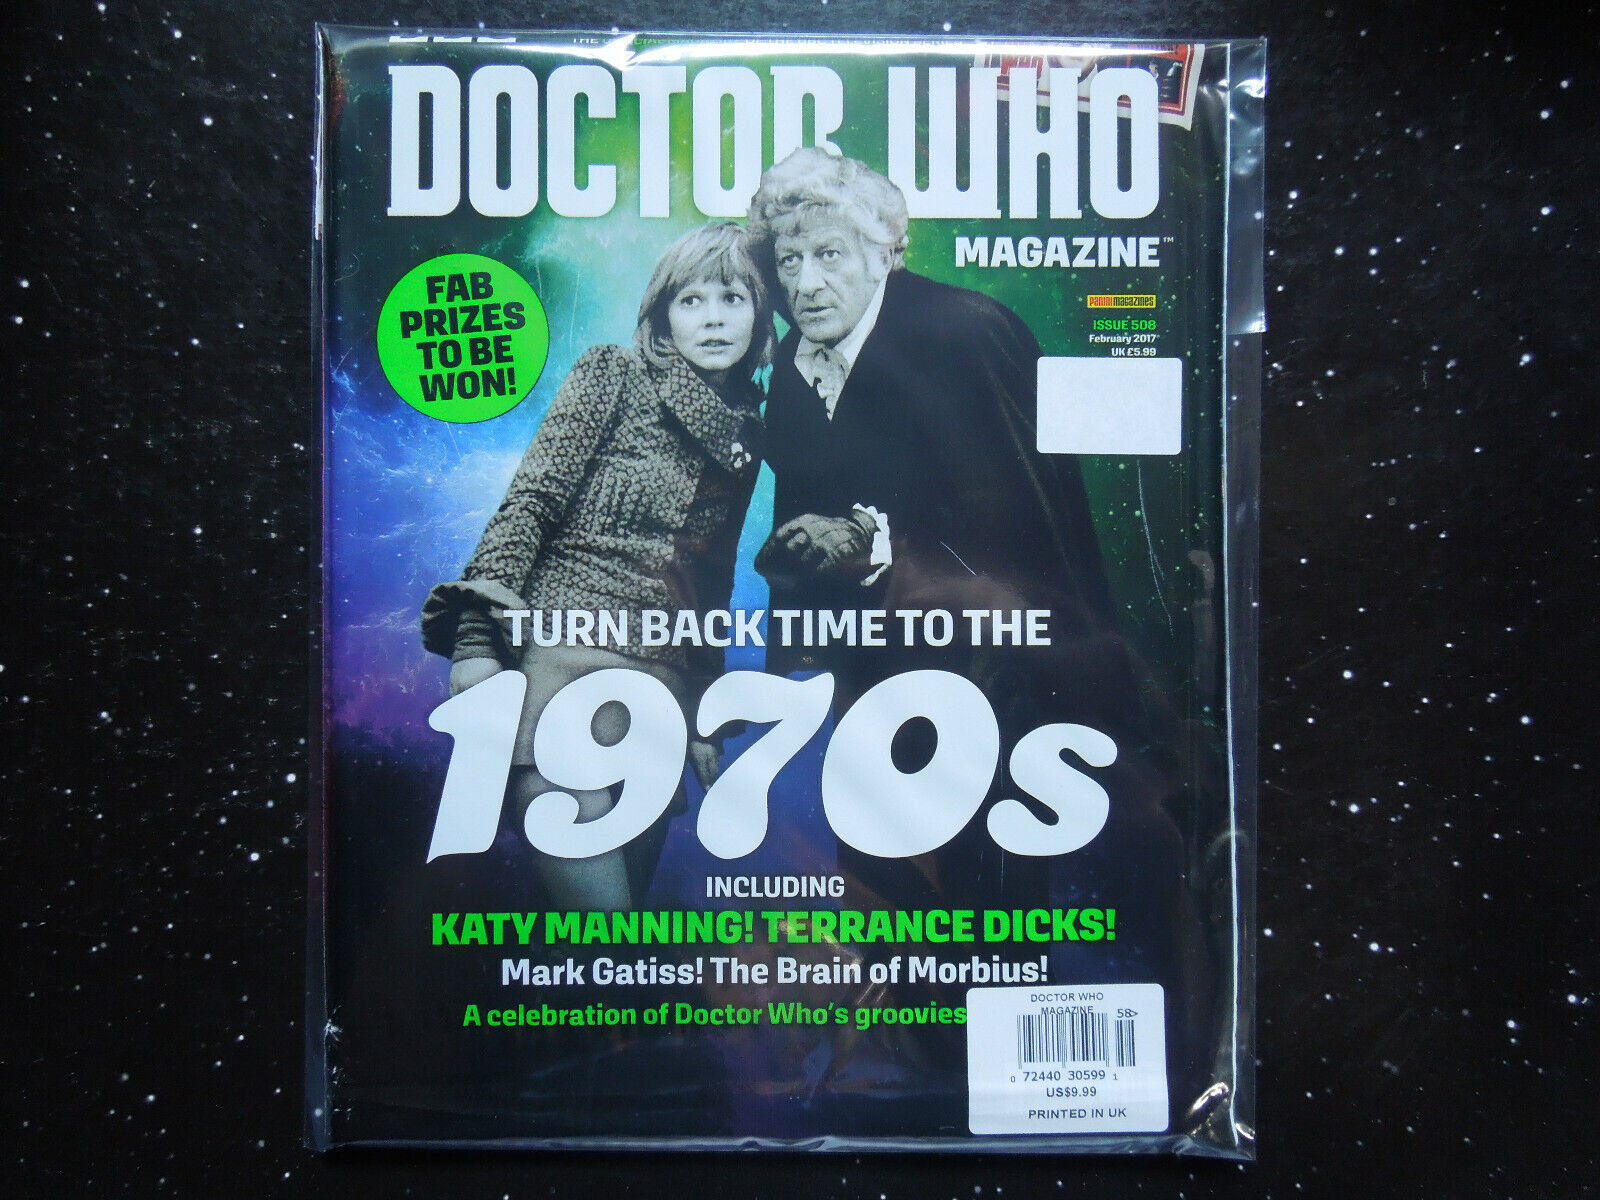 DOCTOR WHO MAGAZINE 508 - Turn Back Time To The 1970s - $4.99